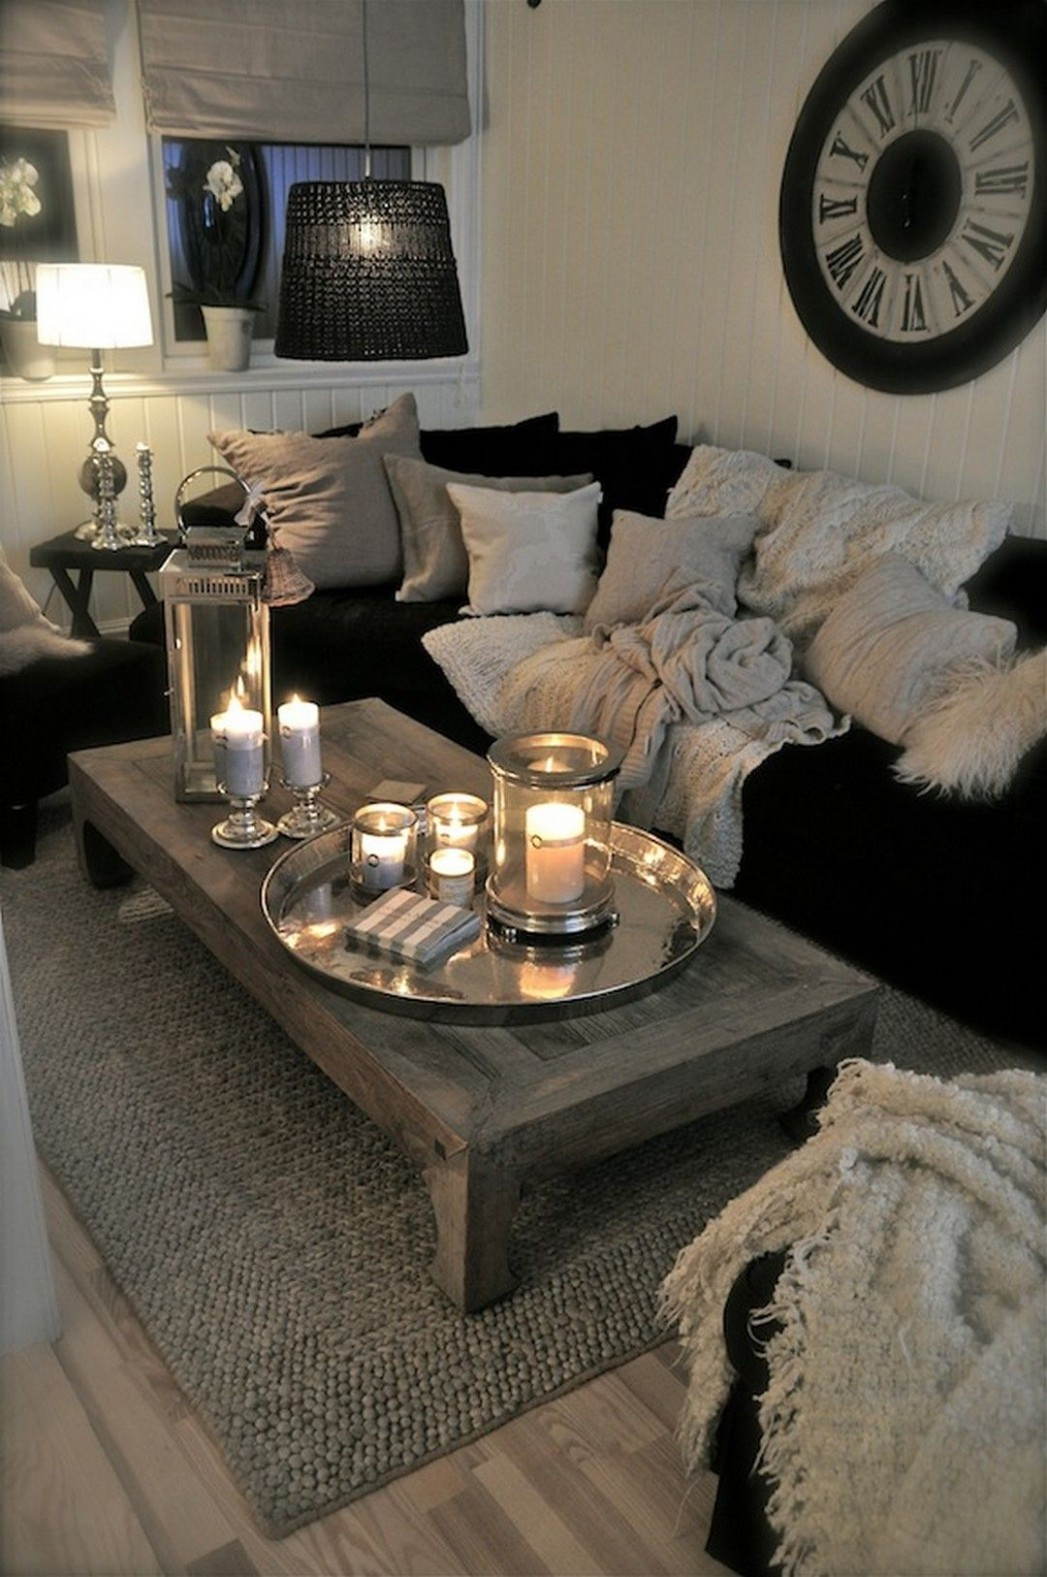 12 Easy DIY First Apartement Decorating Ideas - Architecturehd  - Apartment Decorating Ideas For Students